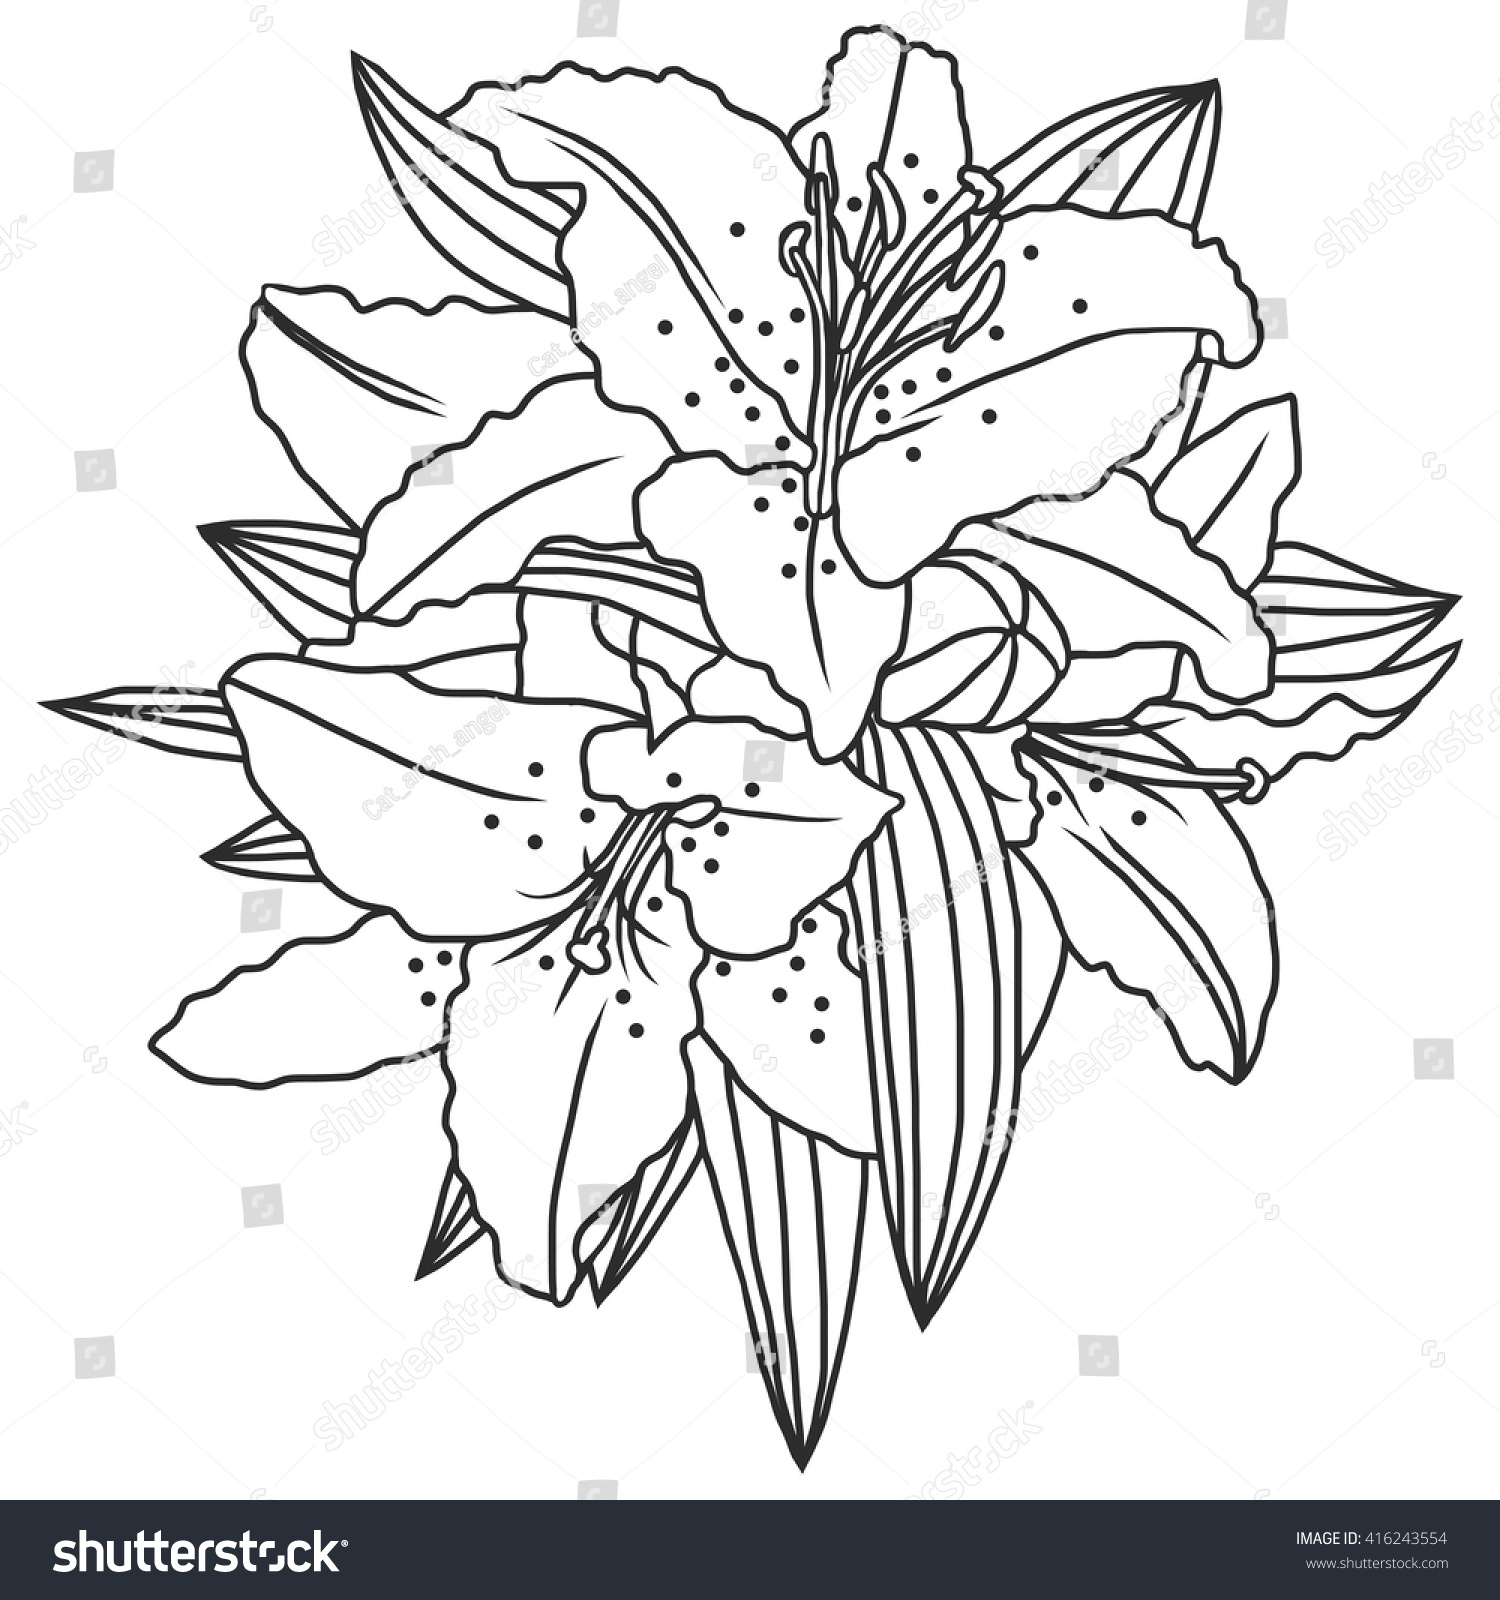 Line Drawing Lily : Line drawing lily flowers leaves hand stock vector